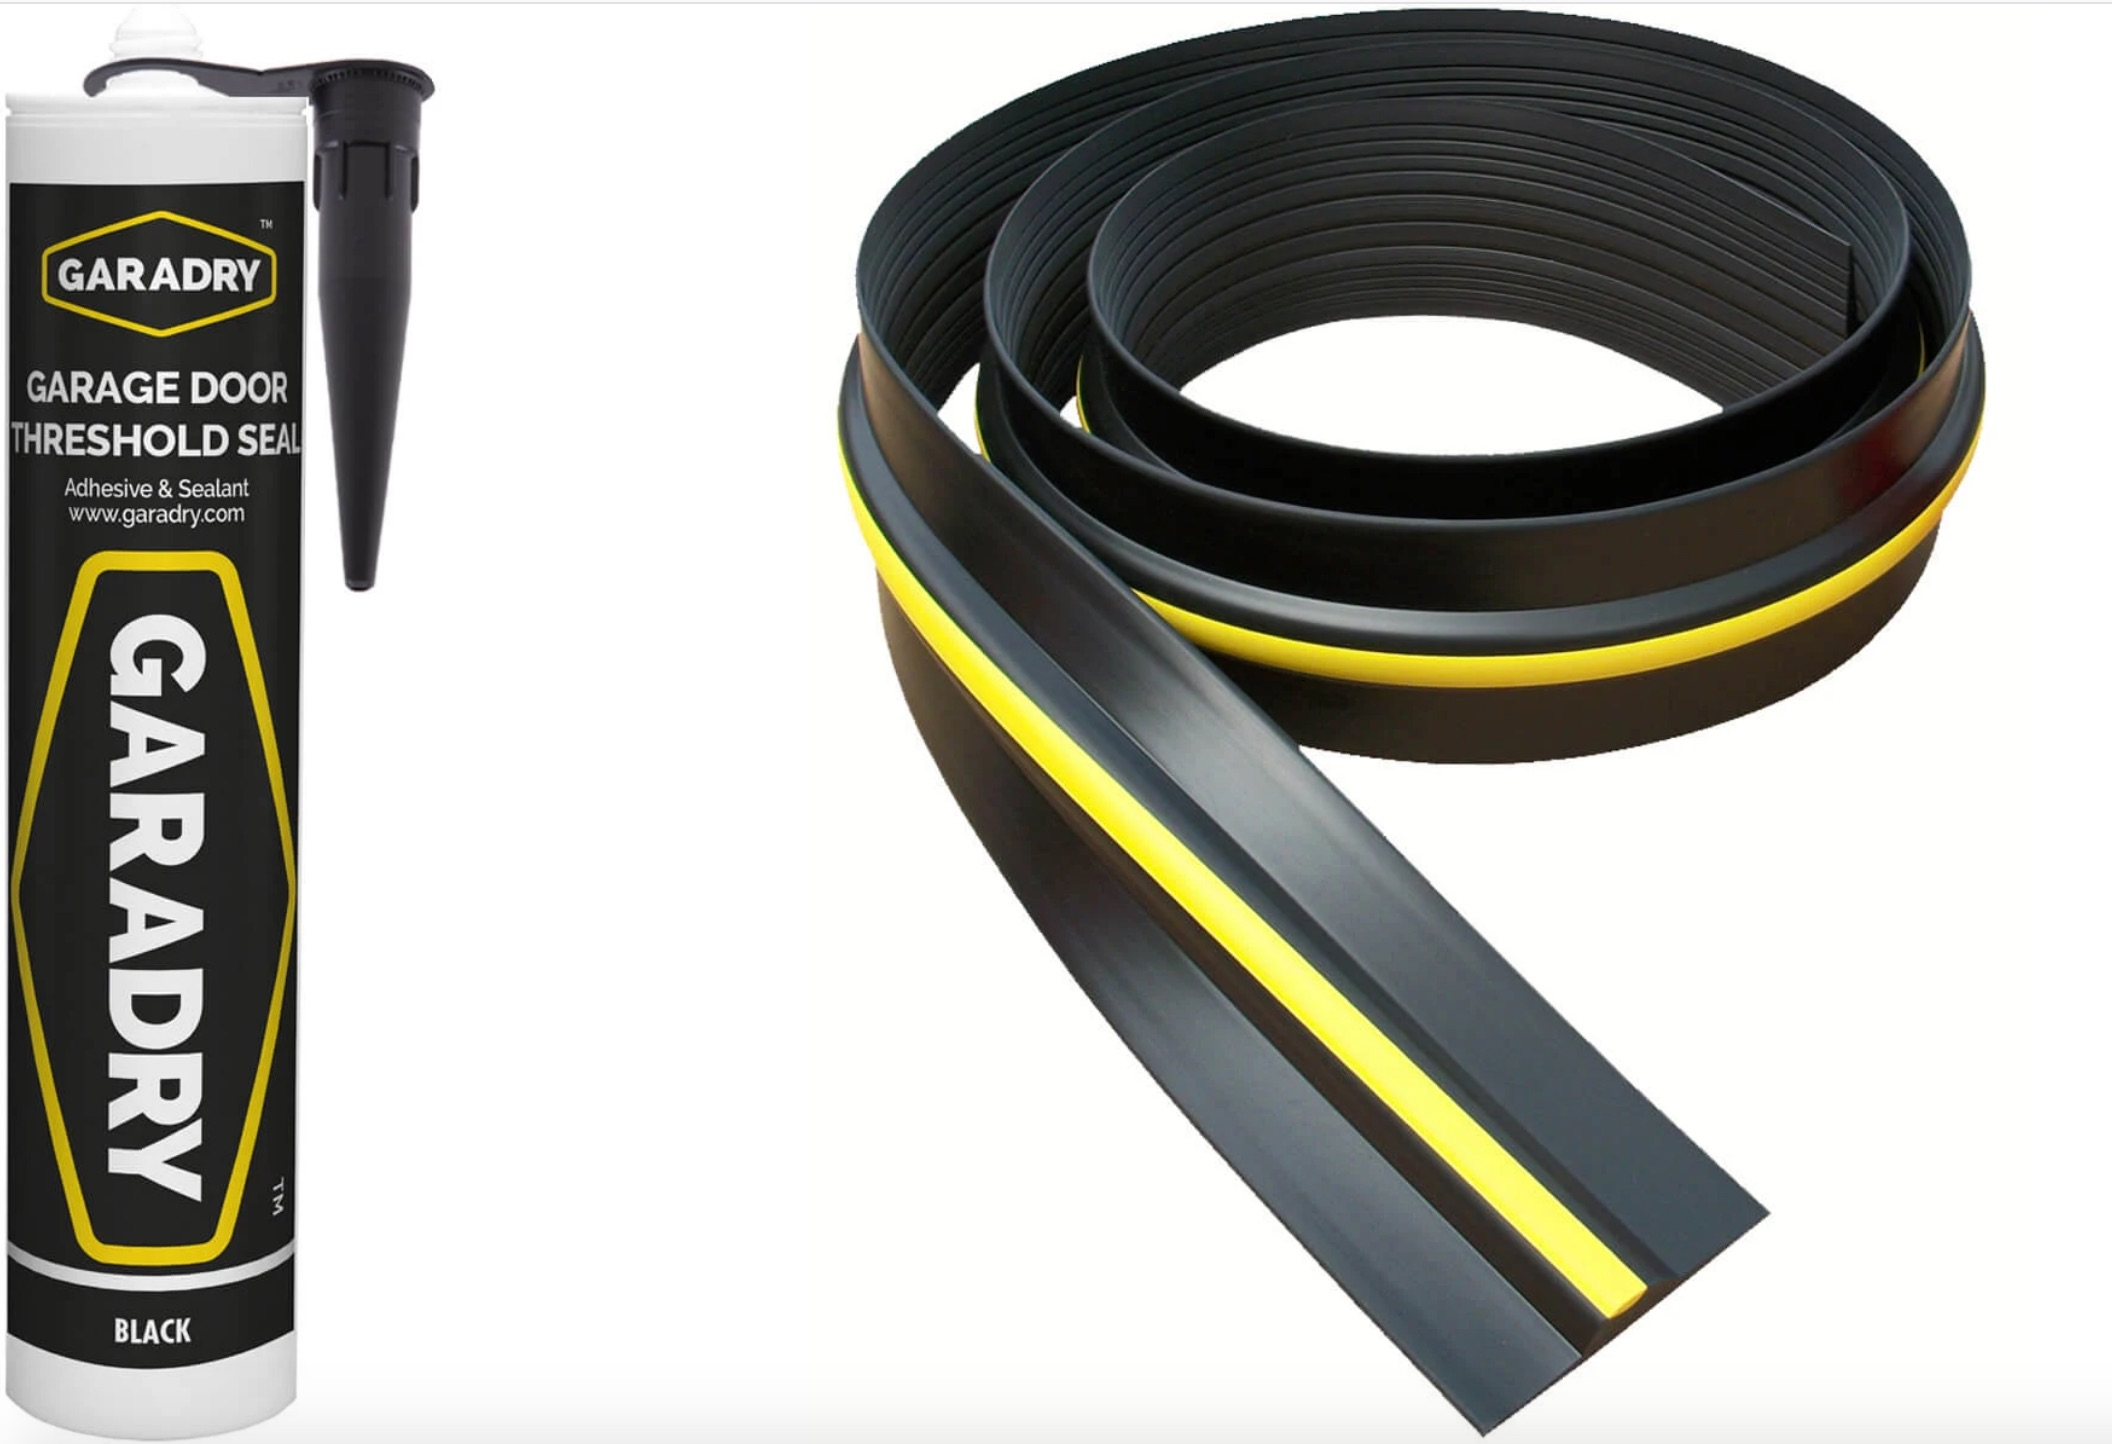 15mm High x 3.73m - 12 foot 3 Long 1 x Adhesive